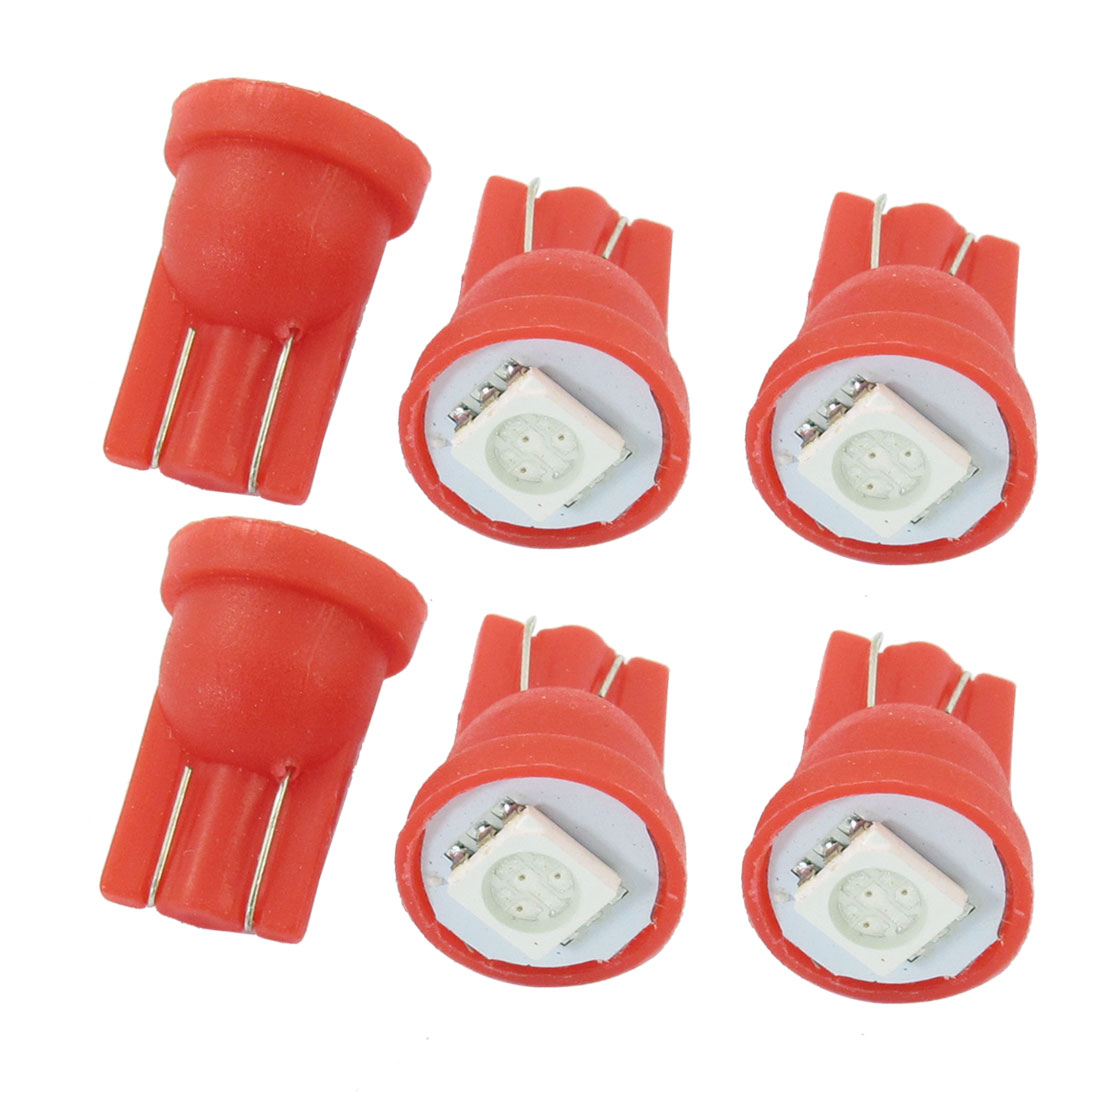 6 Pcs DC 12V T10 Car Red LED 5050 SMD Light Meter Panel Bulb Lamp Side Wedge